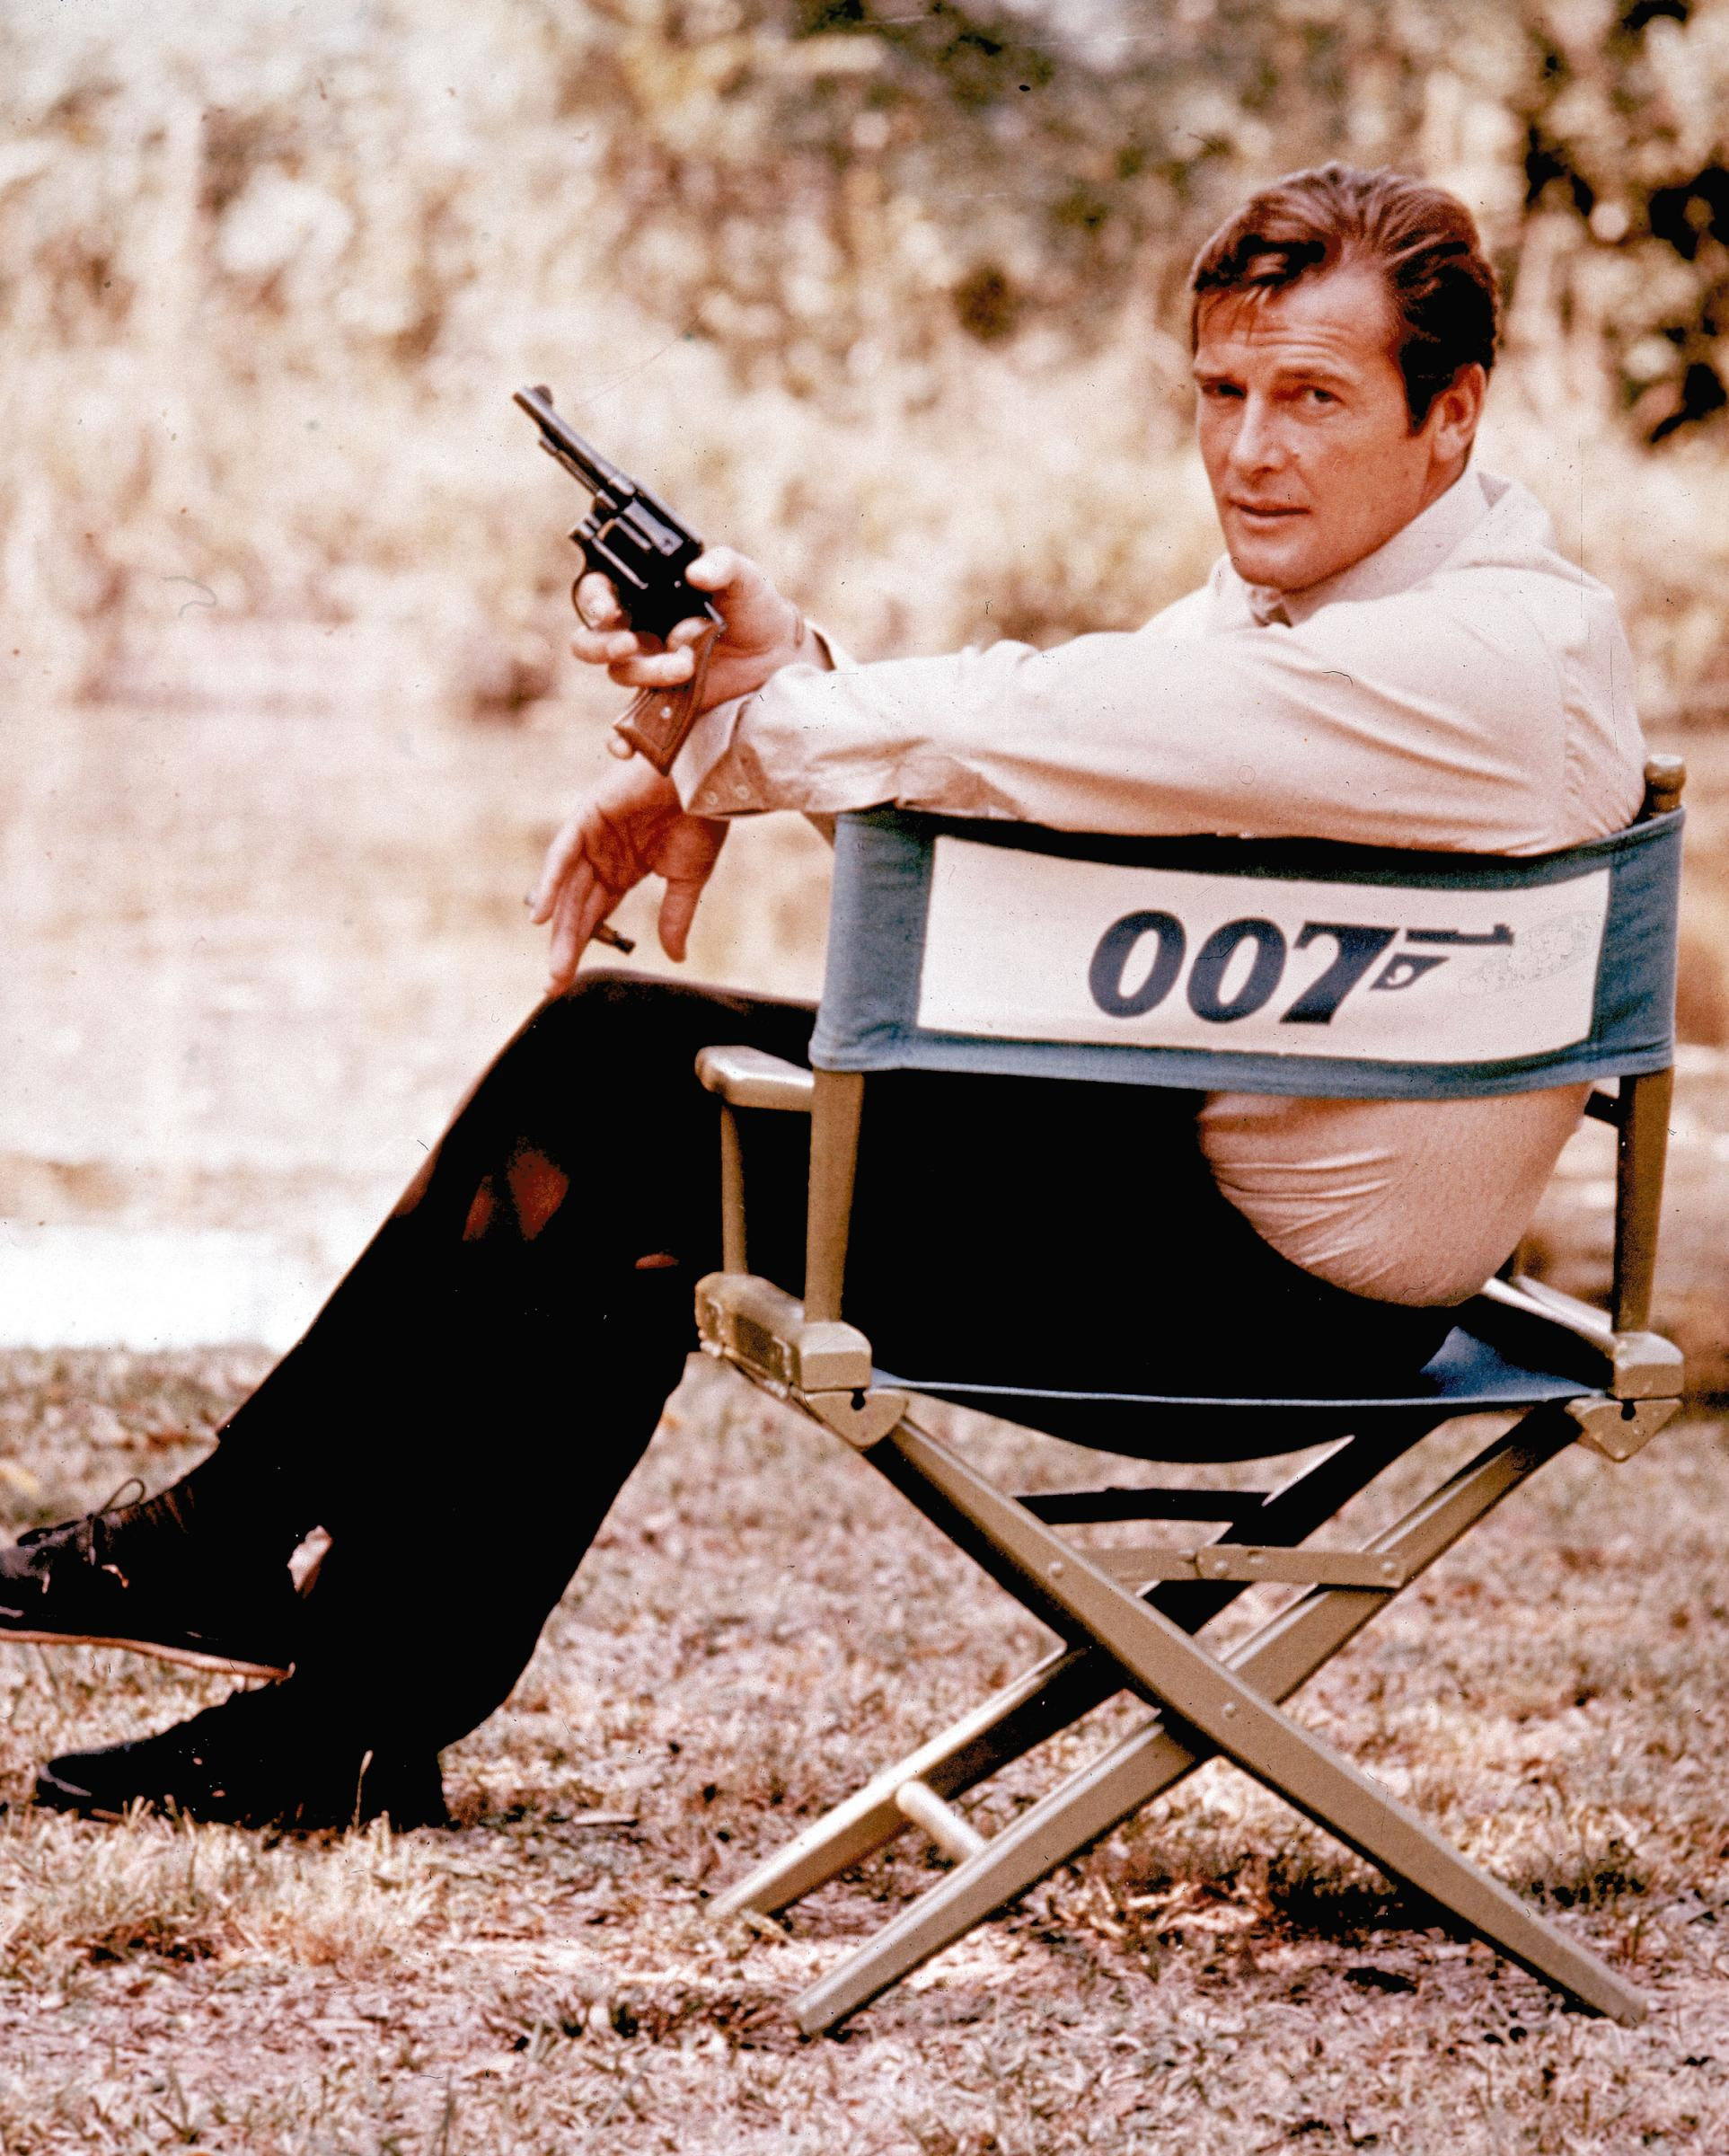 LaPresse02-10-2012Spettacolo50 anni di James BondFILE - British actor Roger Moore, playing the title role of secret service agent 007, James Bond, is shown on location in England in 1972. Moore, played Bond in seven films, more than any other actor.